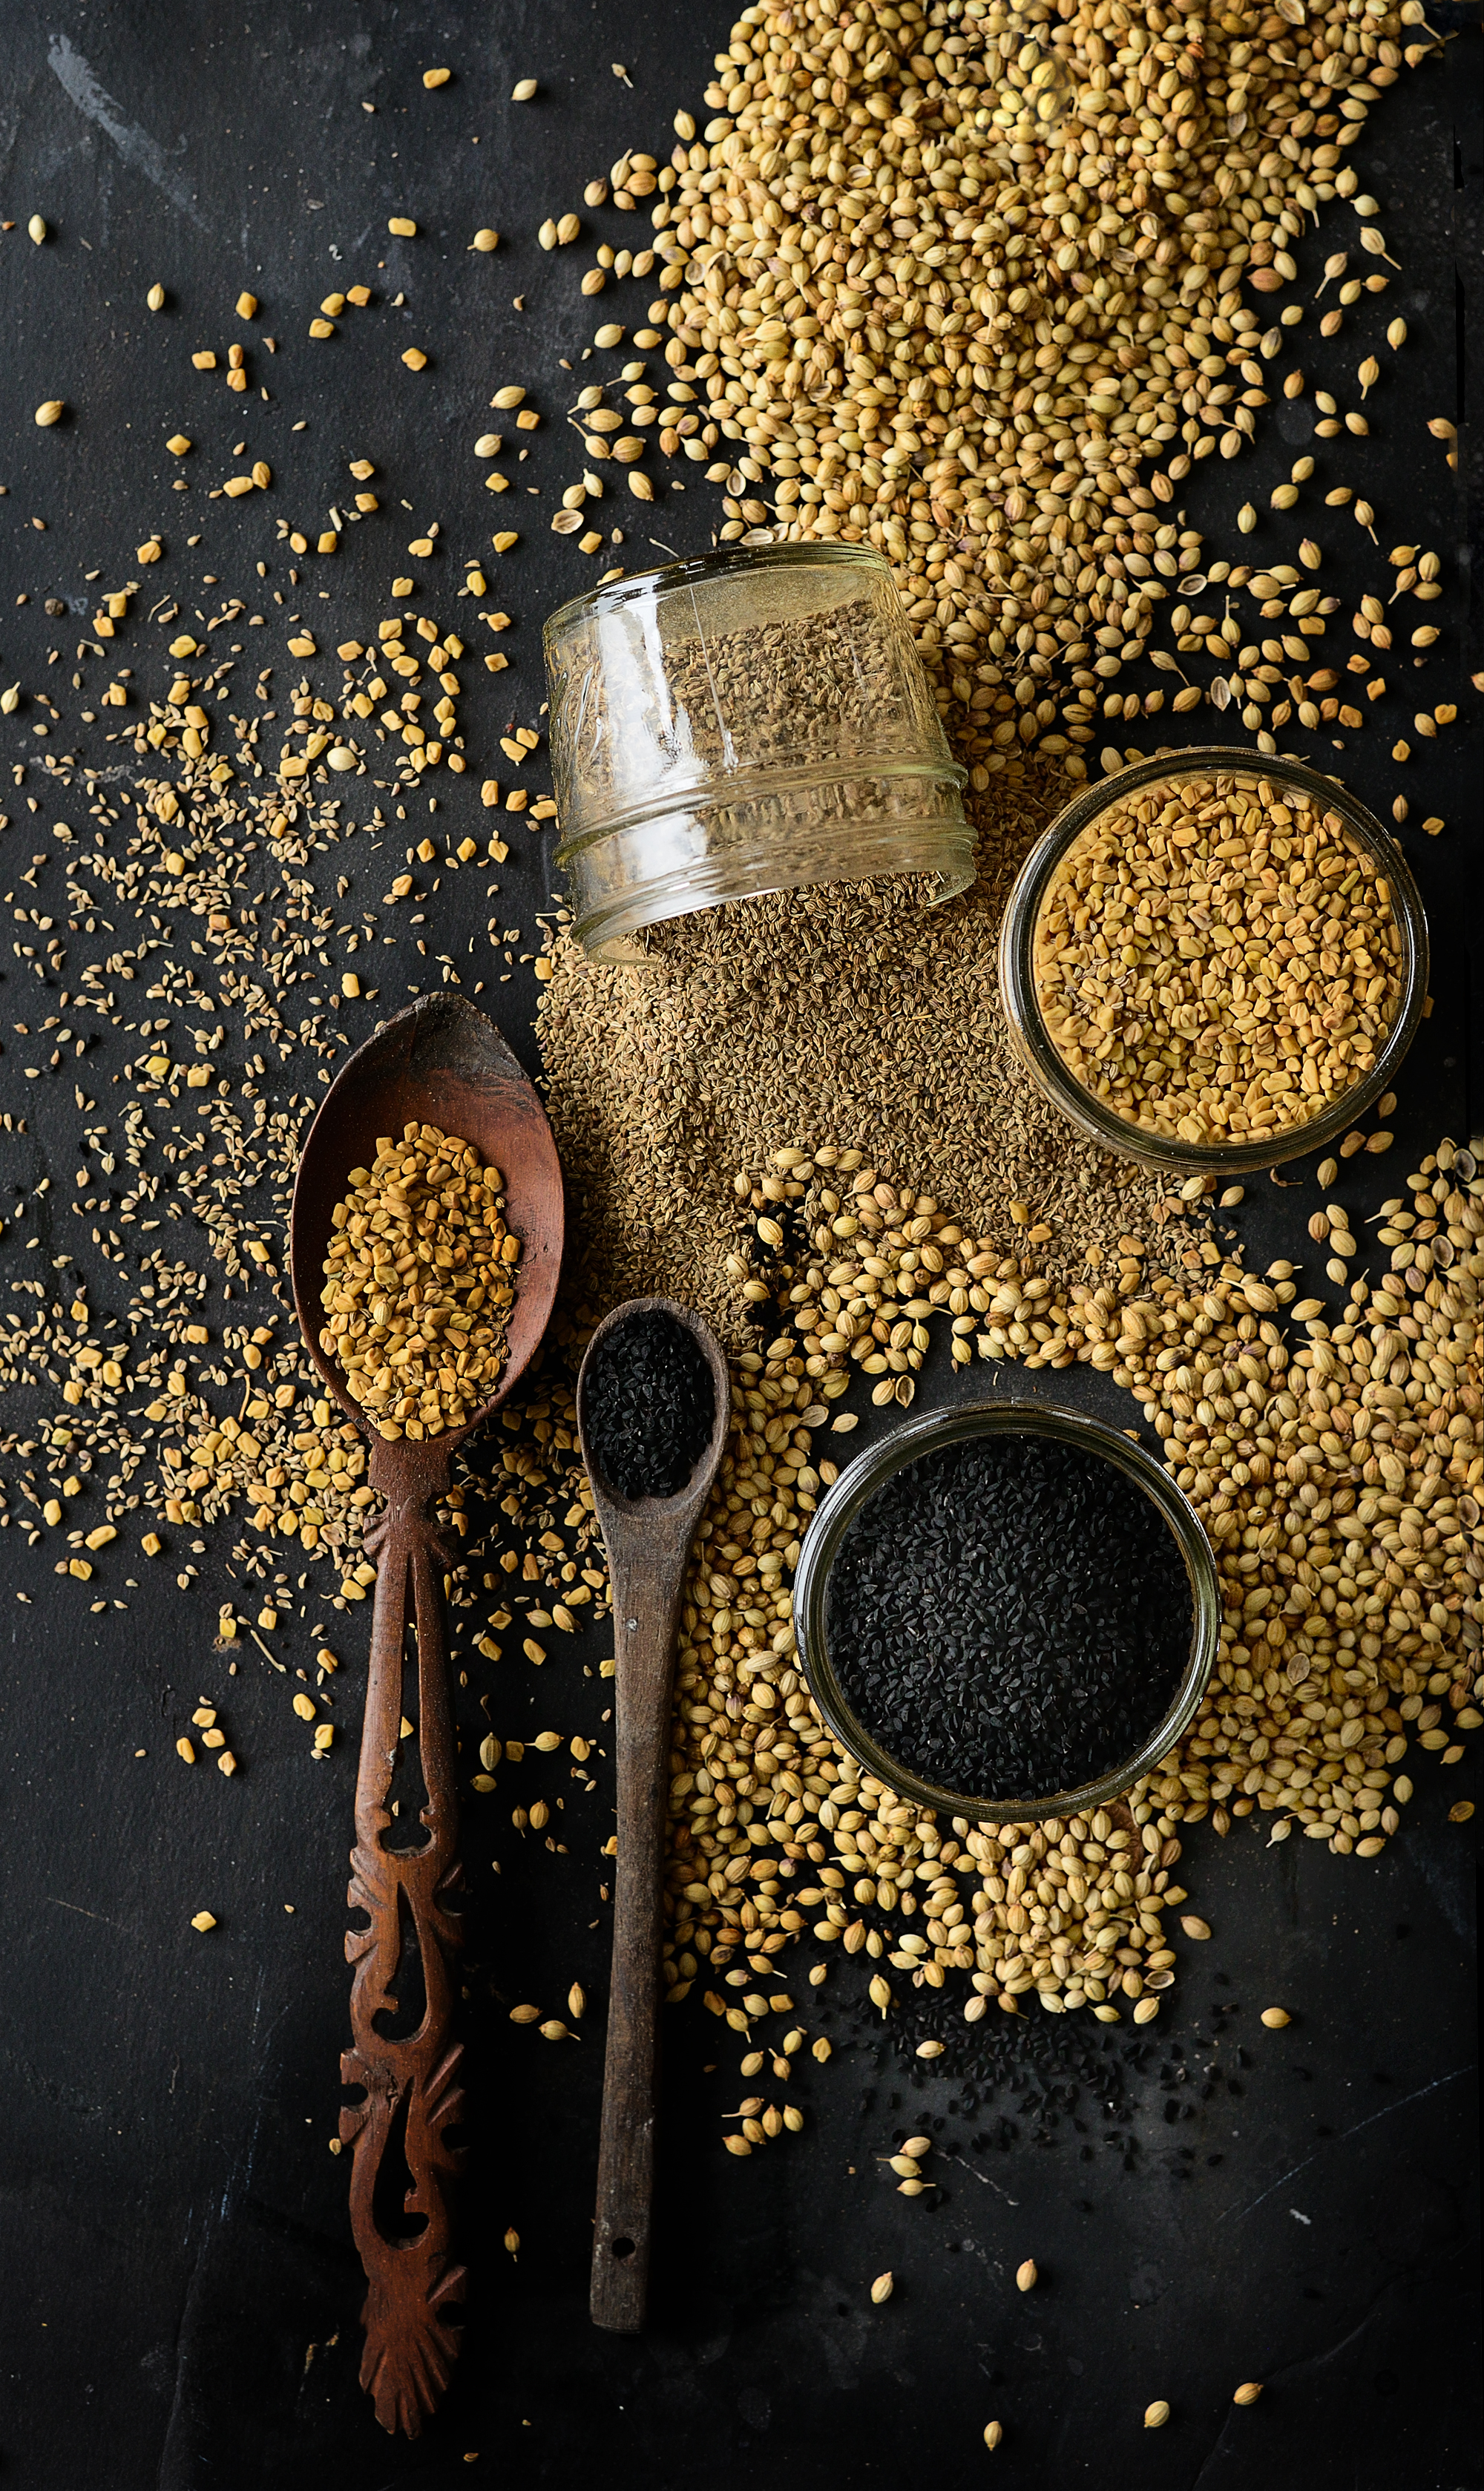 Spices3-HR-SimiJois-2016_edited-1.jpg